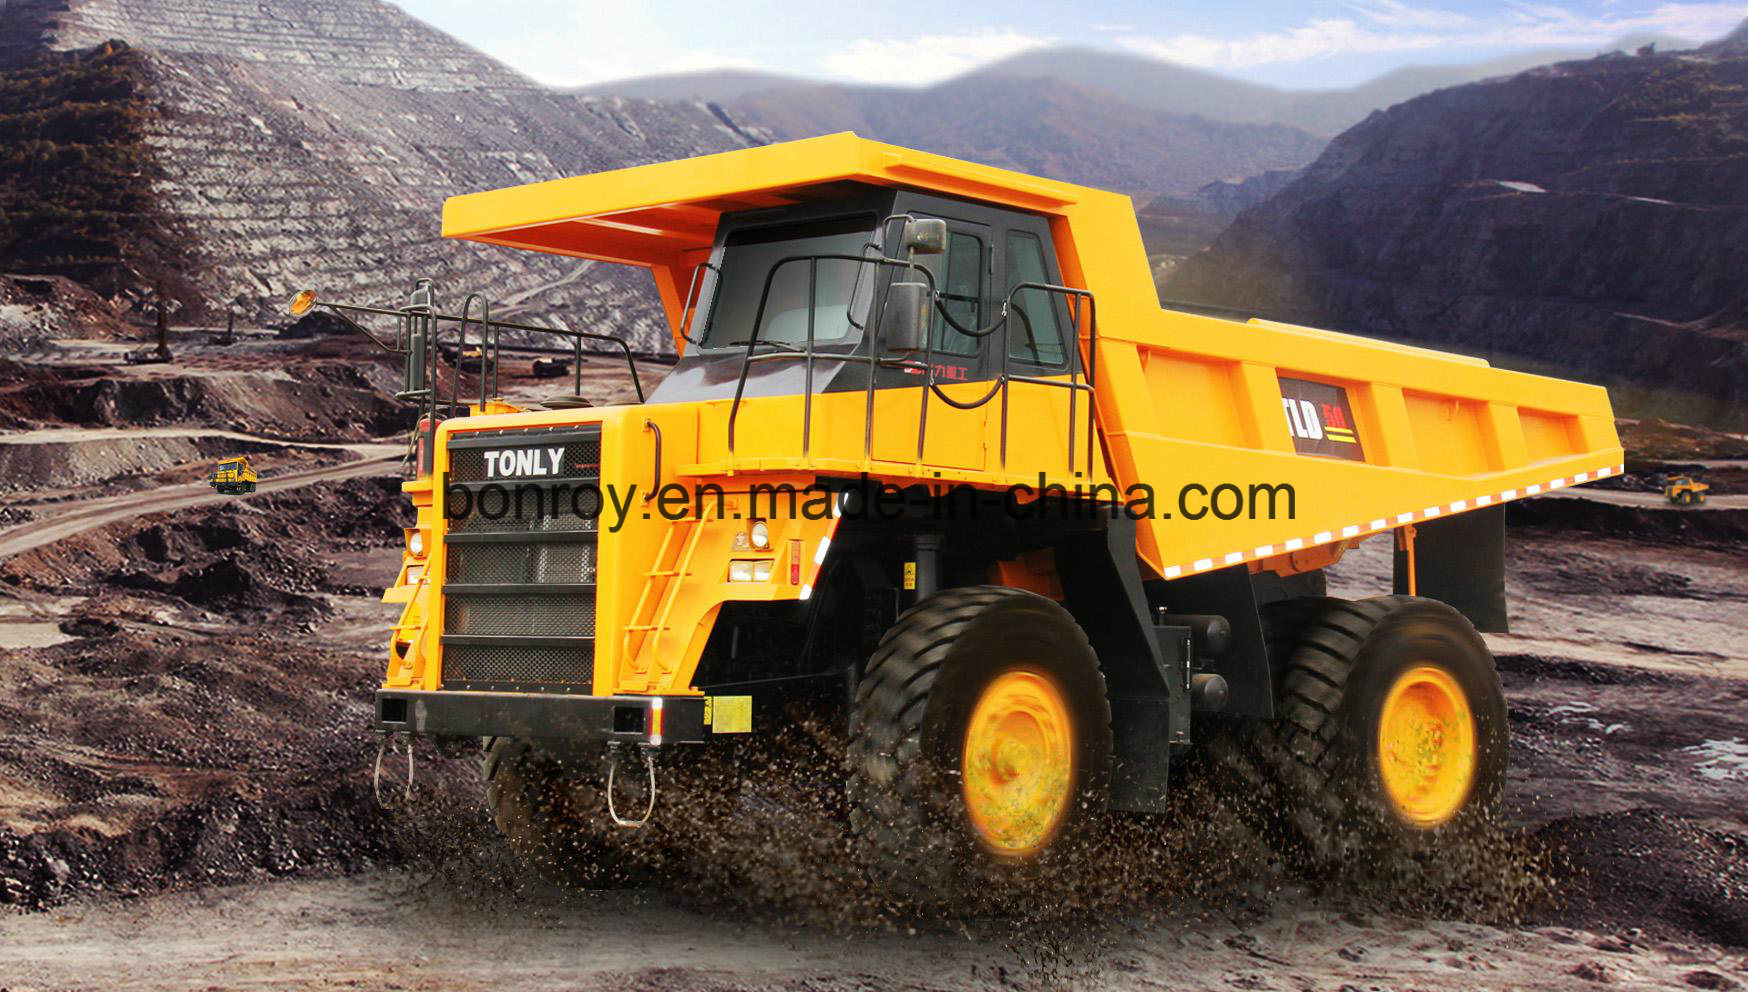 off-Road Cummins Engine Large-Scale 70t Mining Dump Truck